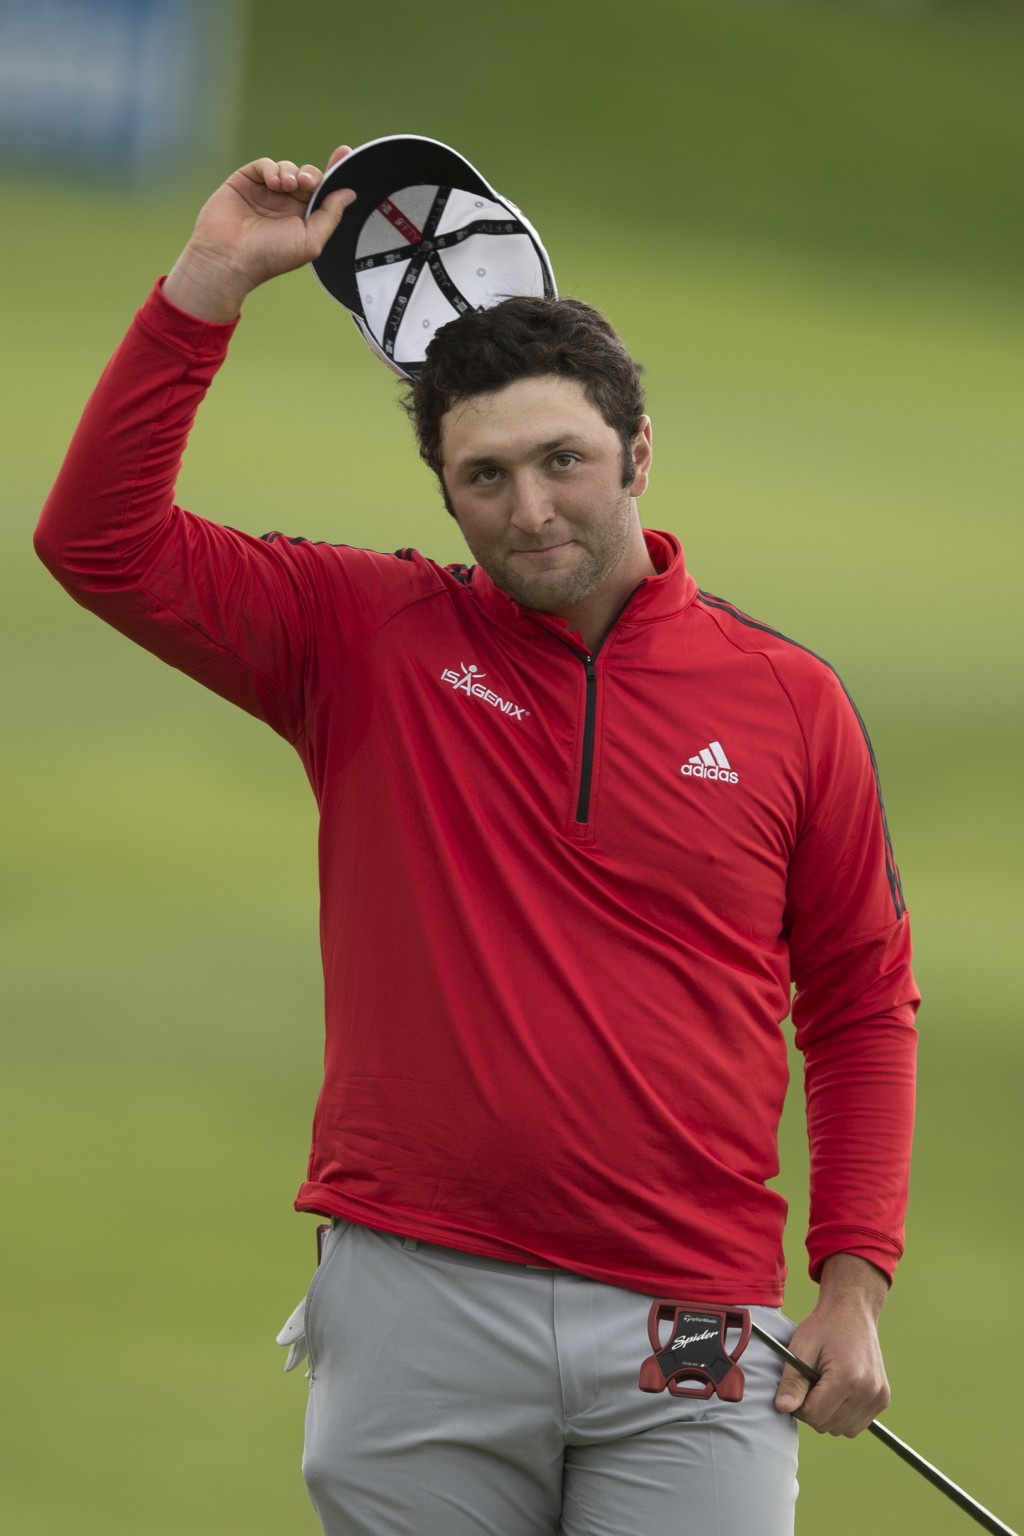 Spain's Jon Rahm celebrates after winning the Spanish Open Golf tournament in Madrid, Spain, Sunday, April 15, 2018. (AP Photo/Paul White)